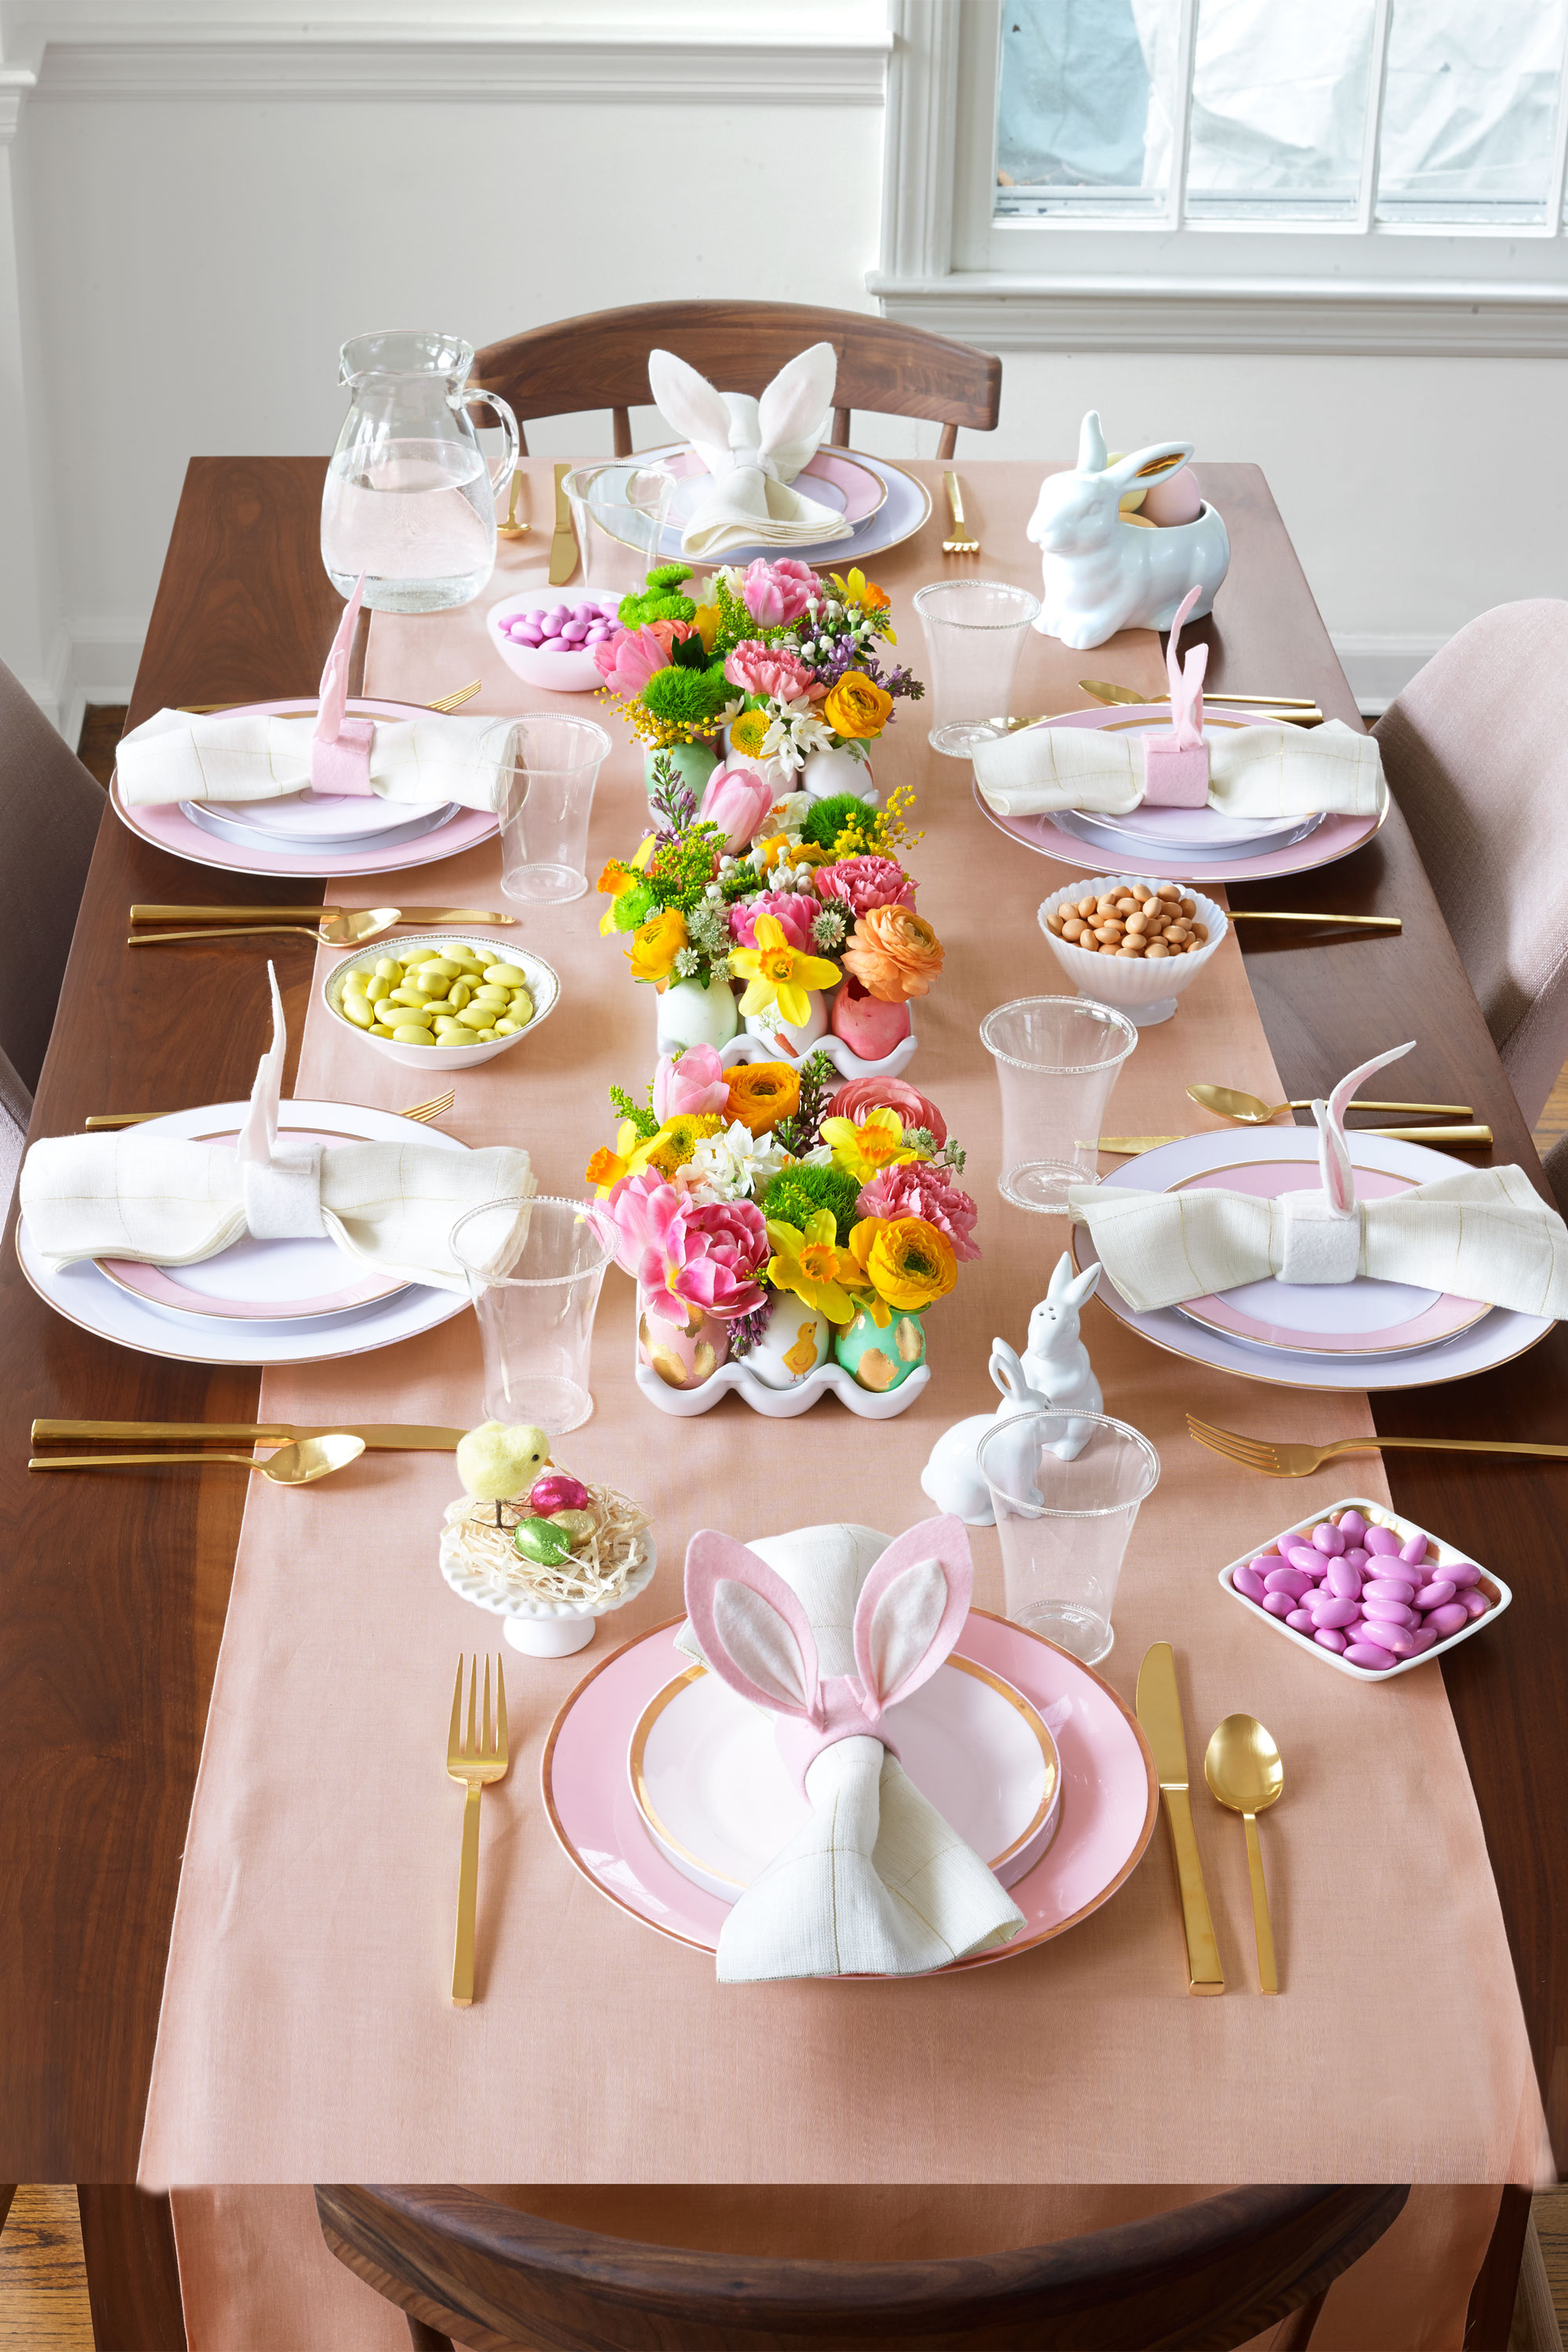 easter table decorations 17 easter table decorations table decor ideas for easter 31704